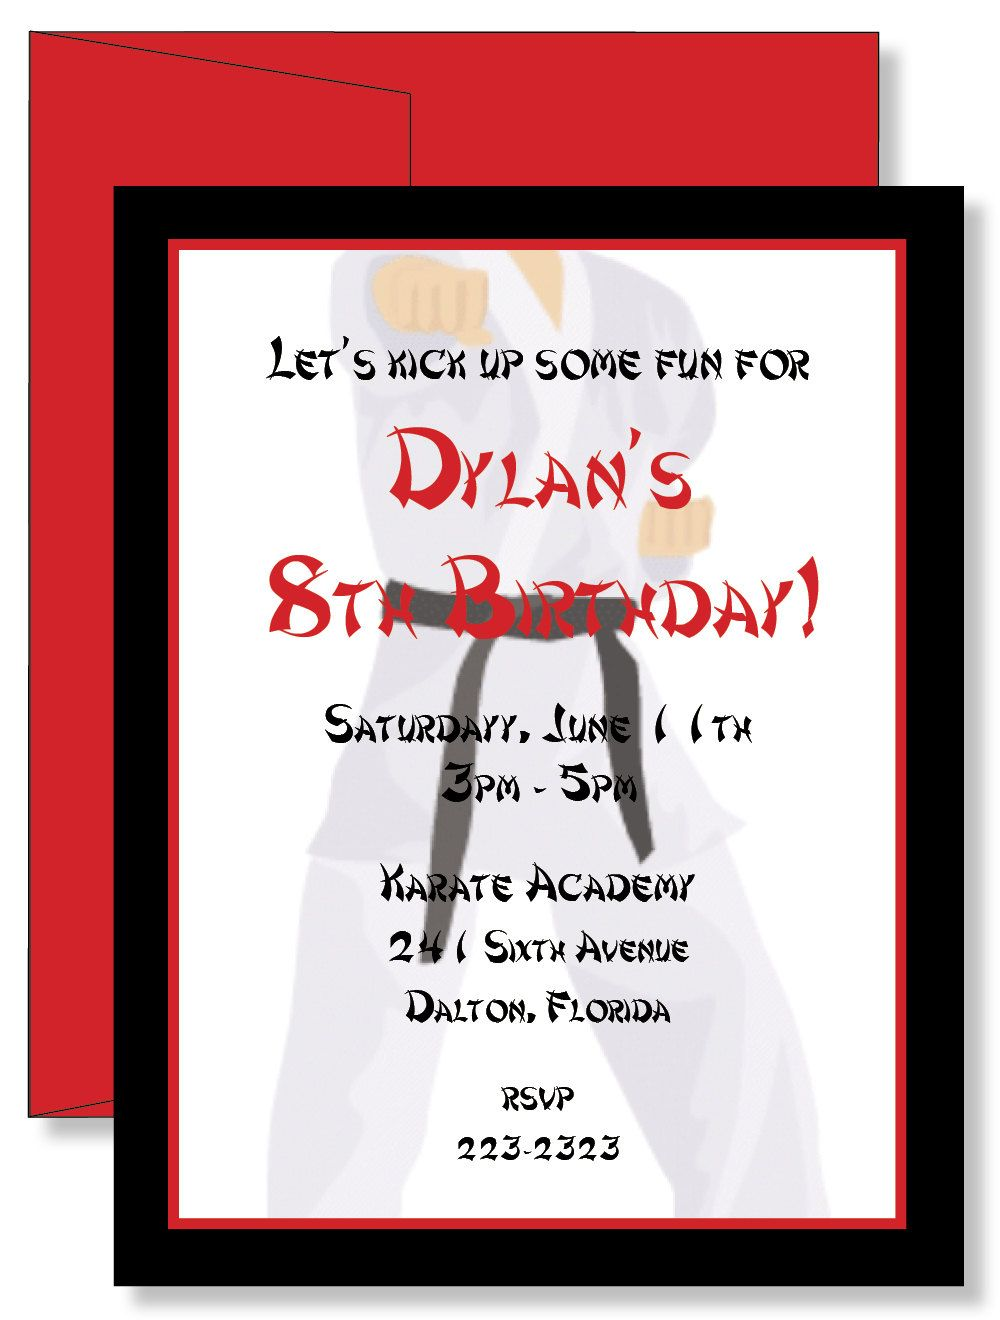 12 Custom Personalized Karate Birthday Party Invitations. $11.00 ...